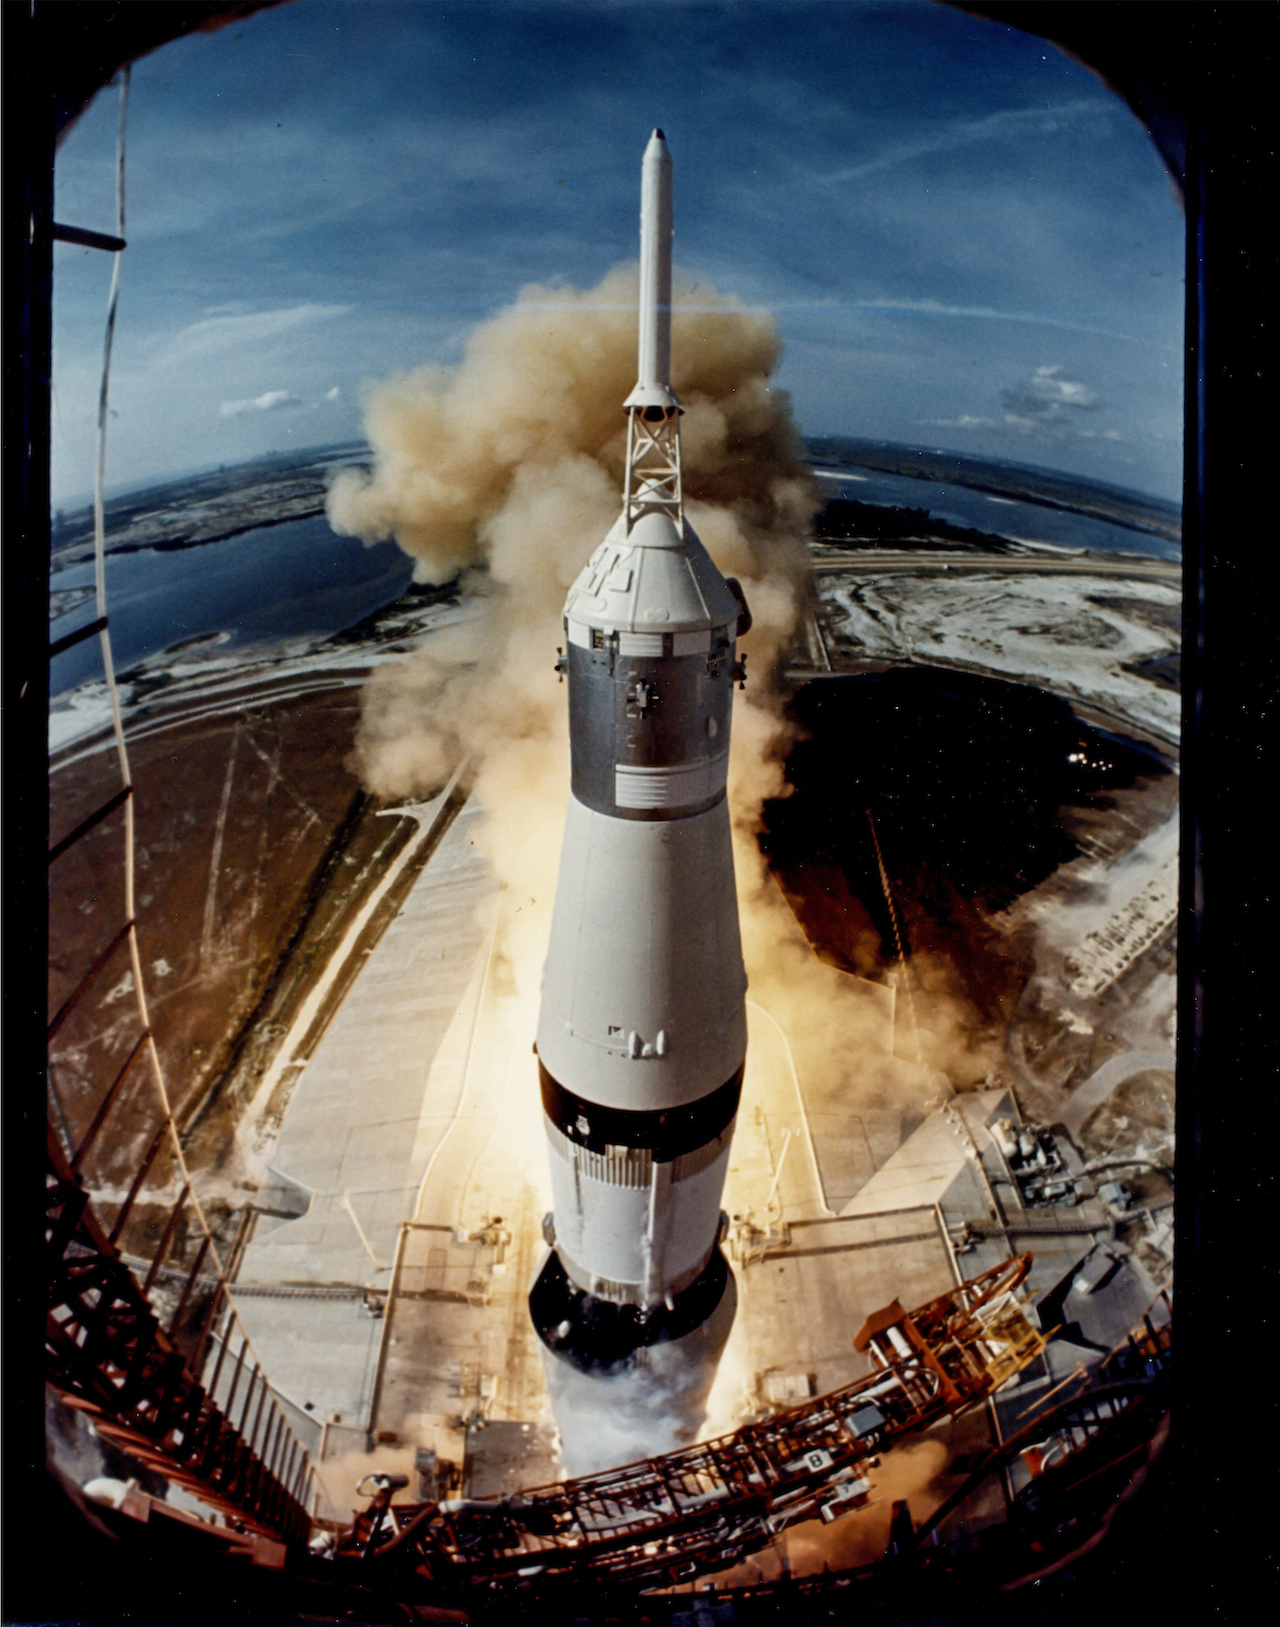 """Ralph Morse Apollo 11 lifts off on its historic flight to the Moon, 16 July 1969 Large-format vintage chromogenic print on resin coated Kodak paper, borderless, 35.2 x 27.5cm, """"A  Kodak Paper"""" watermark on verso Perhaps Morse's greatest image for Life Magazine: """"You have to realize that the rocket had to go  through the camera, in a sense. It had to go through the camera's field of view. It took me two years  to get NASA to agree to let me make this shot. Now, RCA had the camera contract at Cape Canaveral  at that time, and they had a steel box-with optical glass-attached to the launch platform. We  negotiated a deal with them and I was able to put a Nikon, with maybe 30 or 40 feet of film, inside  the box, looking out through the glass. The camera was wired into the launch countdown, and at  around minus-four seconds the camera started shooting something like ten frames per second.""""  Ralph Morse Est. £1,000-1,500 Reproduction, © Bloomsbury Auctions"""